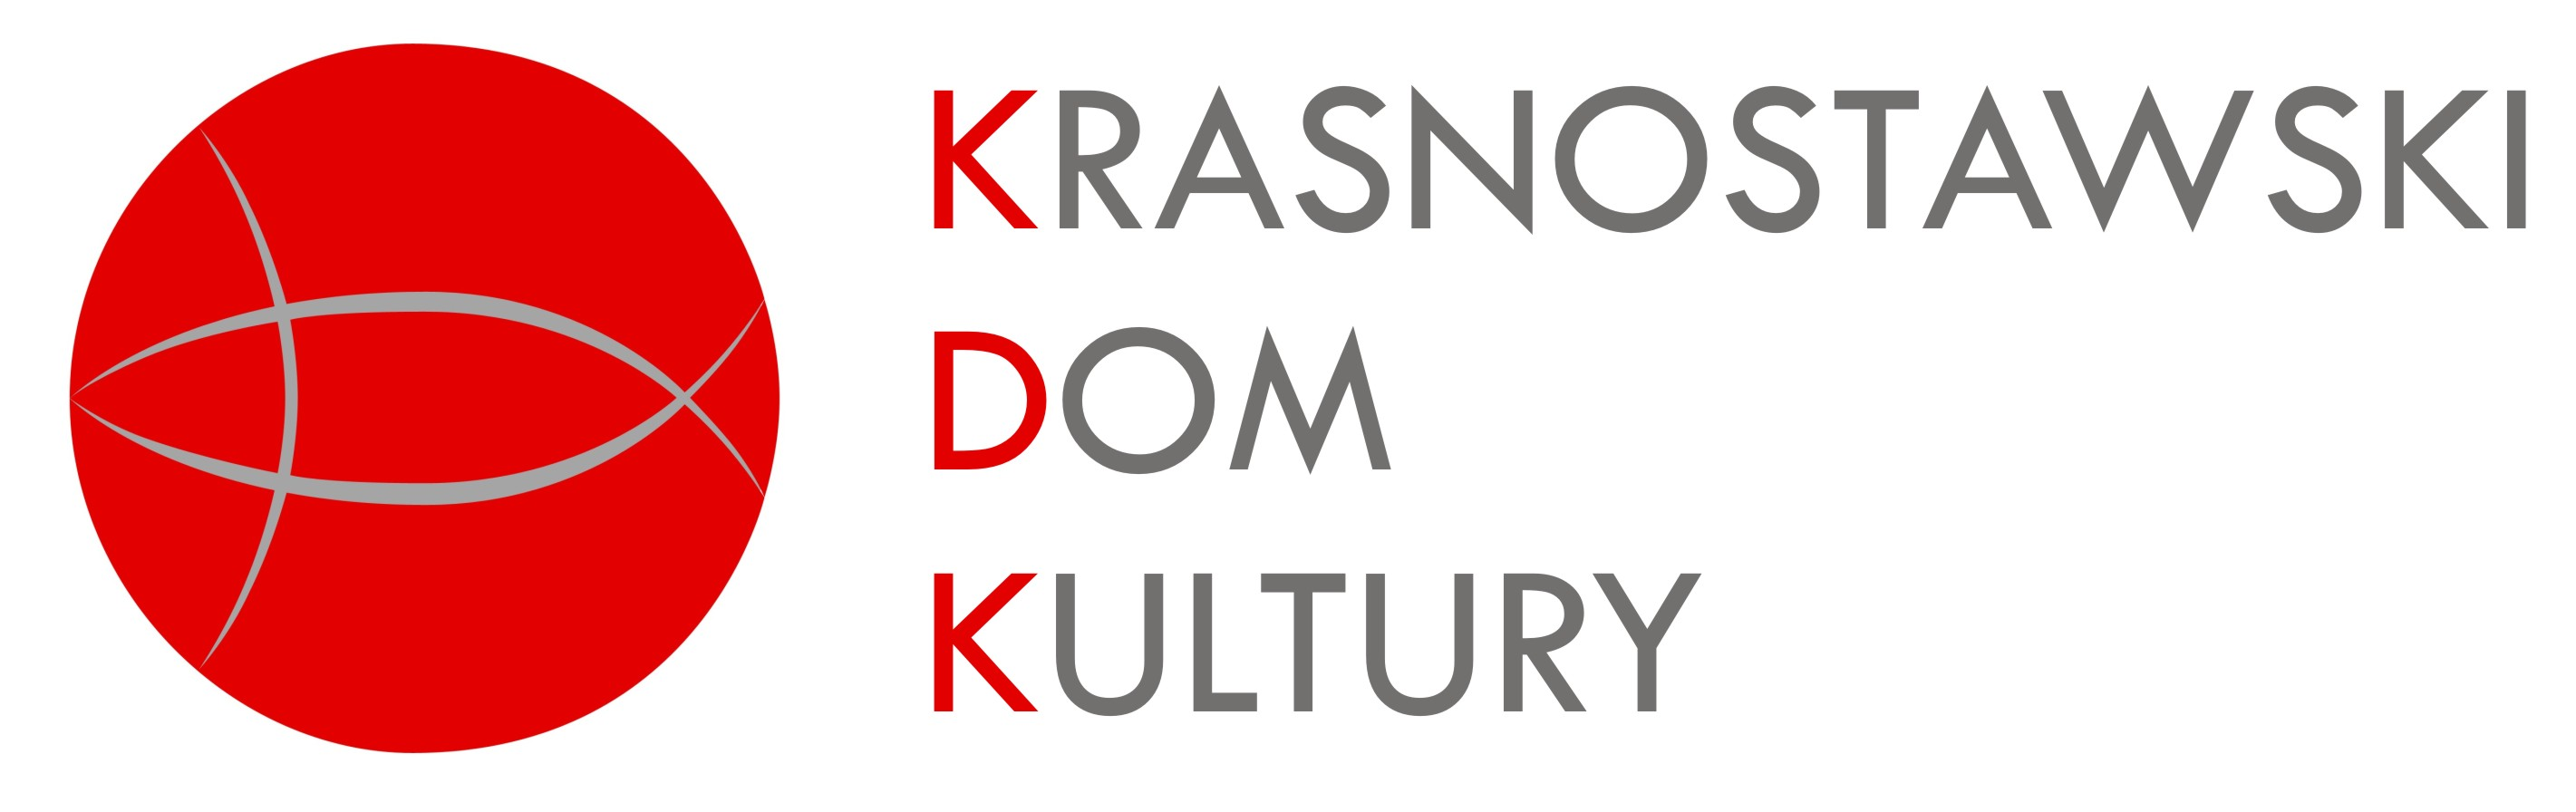 KDK logo to